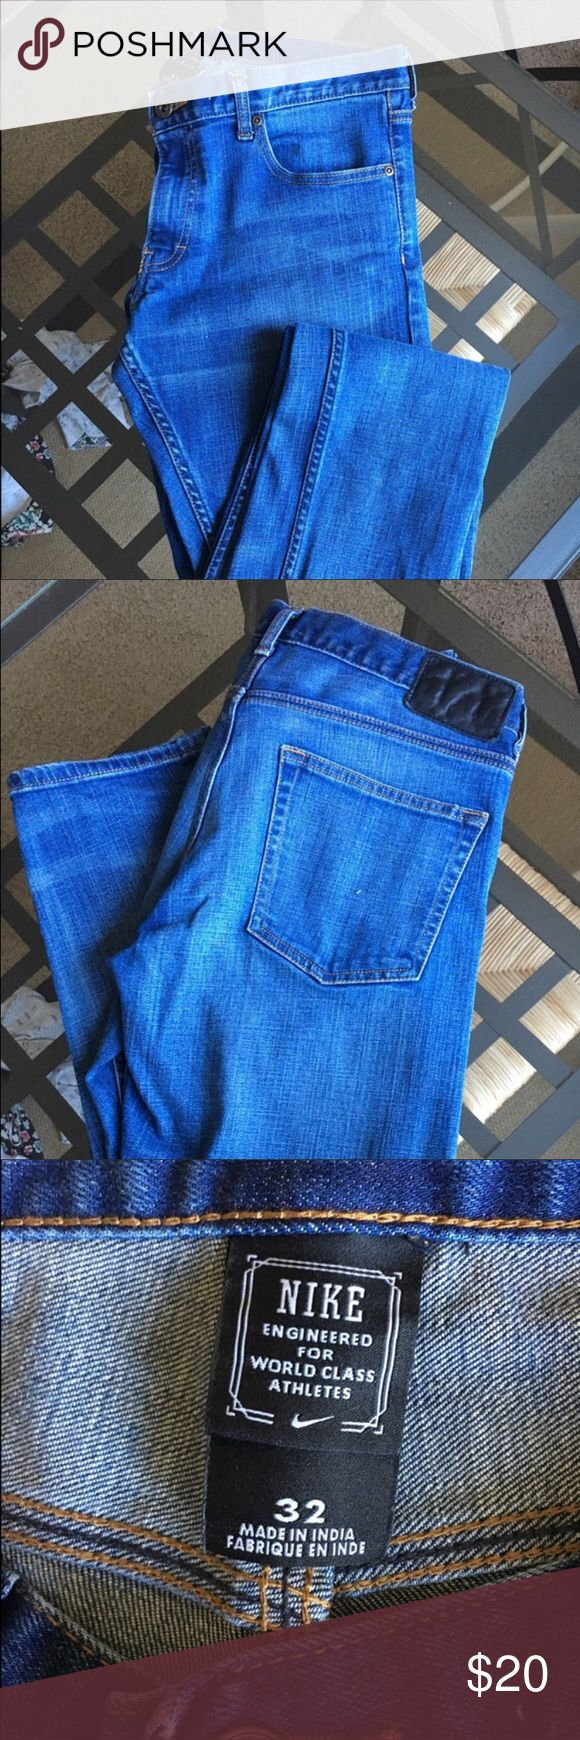 "Men's Nike slim fit Jean. Like new!! Excellent condition. 31"" inseam, approx 7"" leg opening. Perfect true blue wash. Nike Jeans Slim"